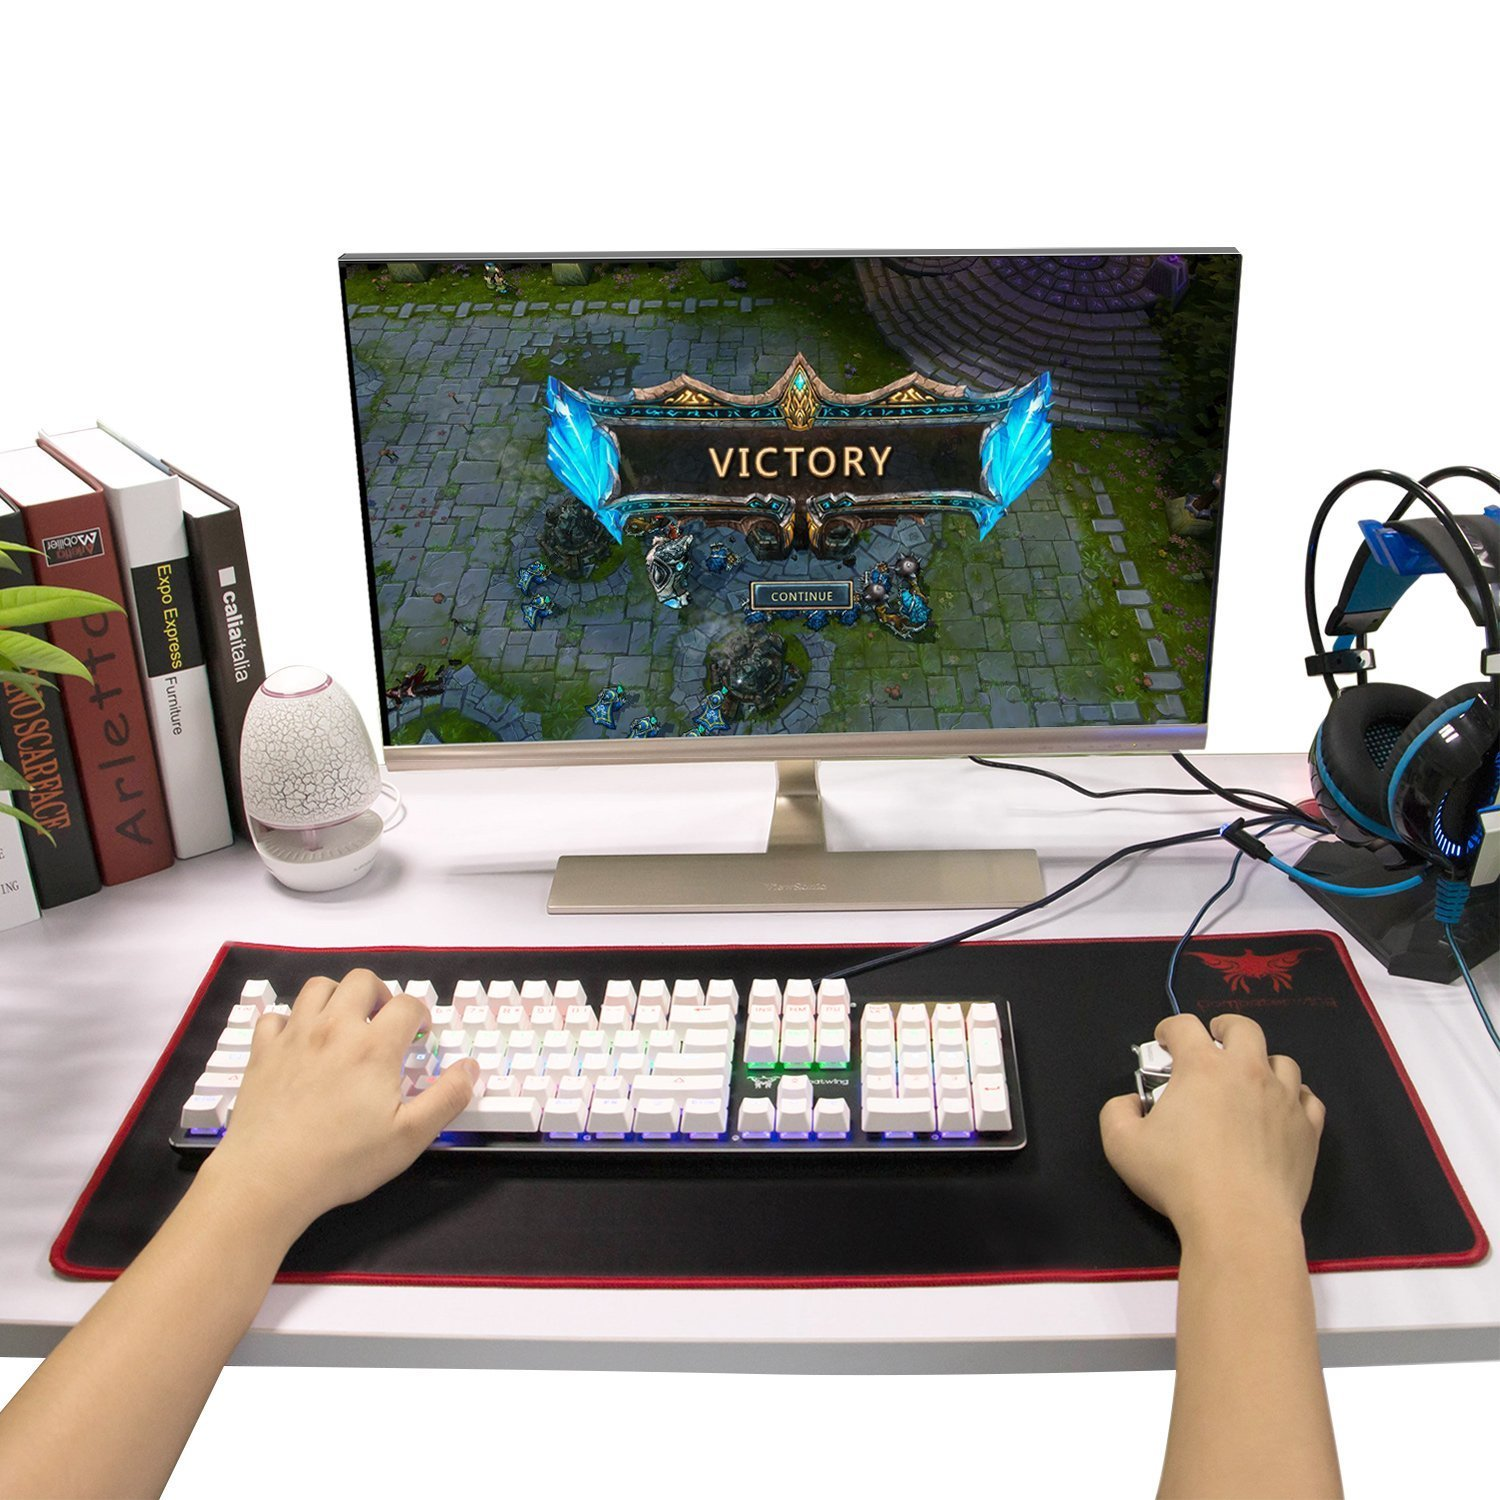 Combaterwing Gaming Mouse Pad, Large Computer Wireless Mouse Mat with Stitched Edges Silky Smooth and Ultra Thick Wide Size 27.56 X 11.81 X 0.08 inches (Black)